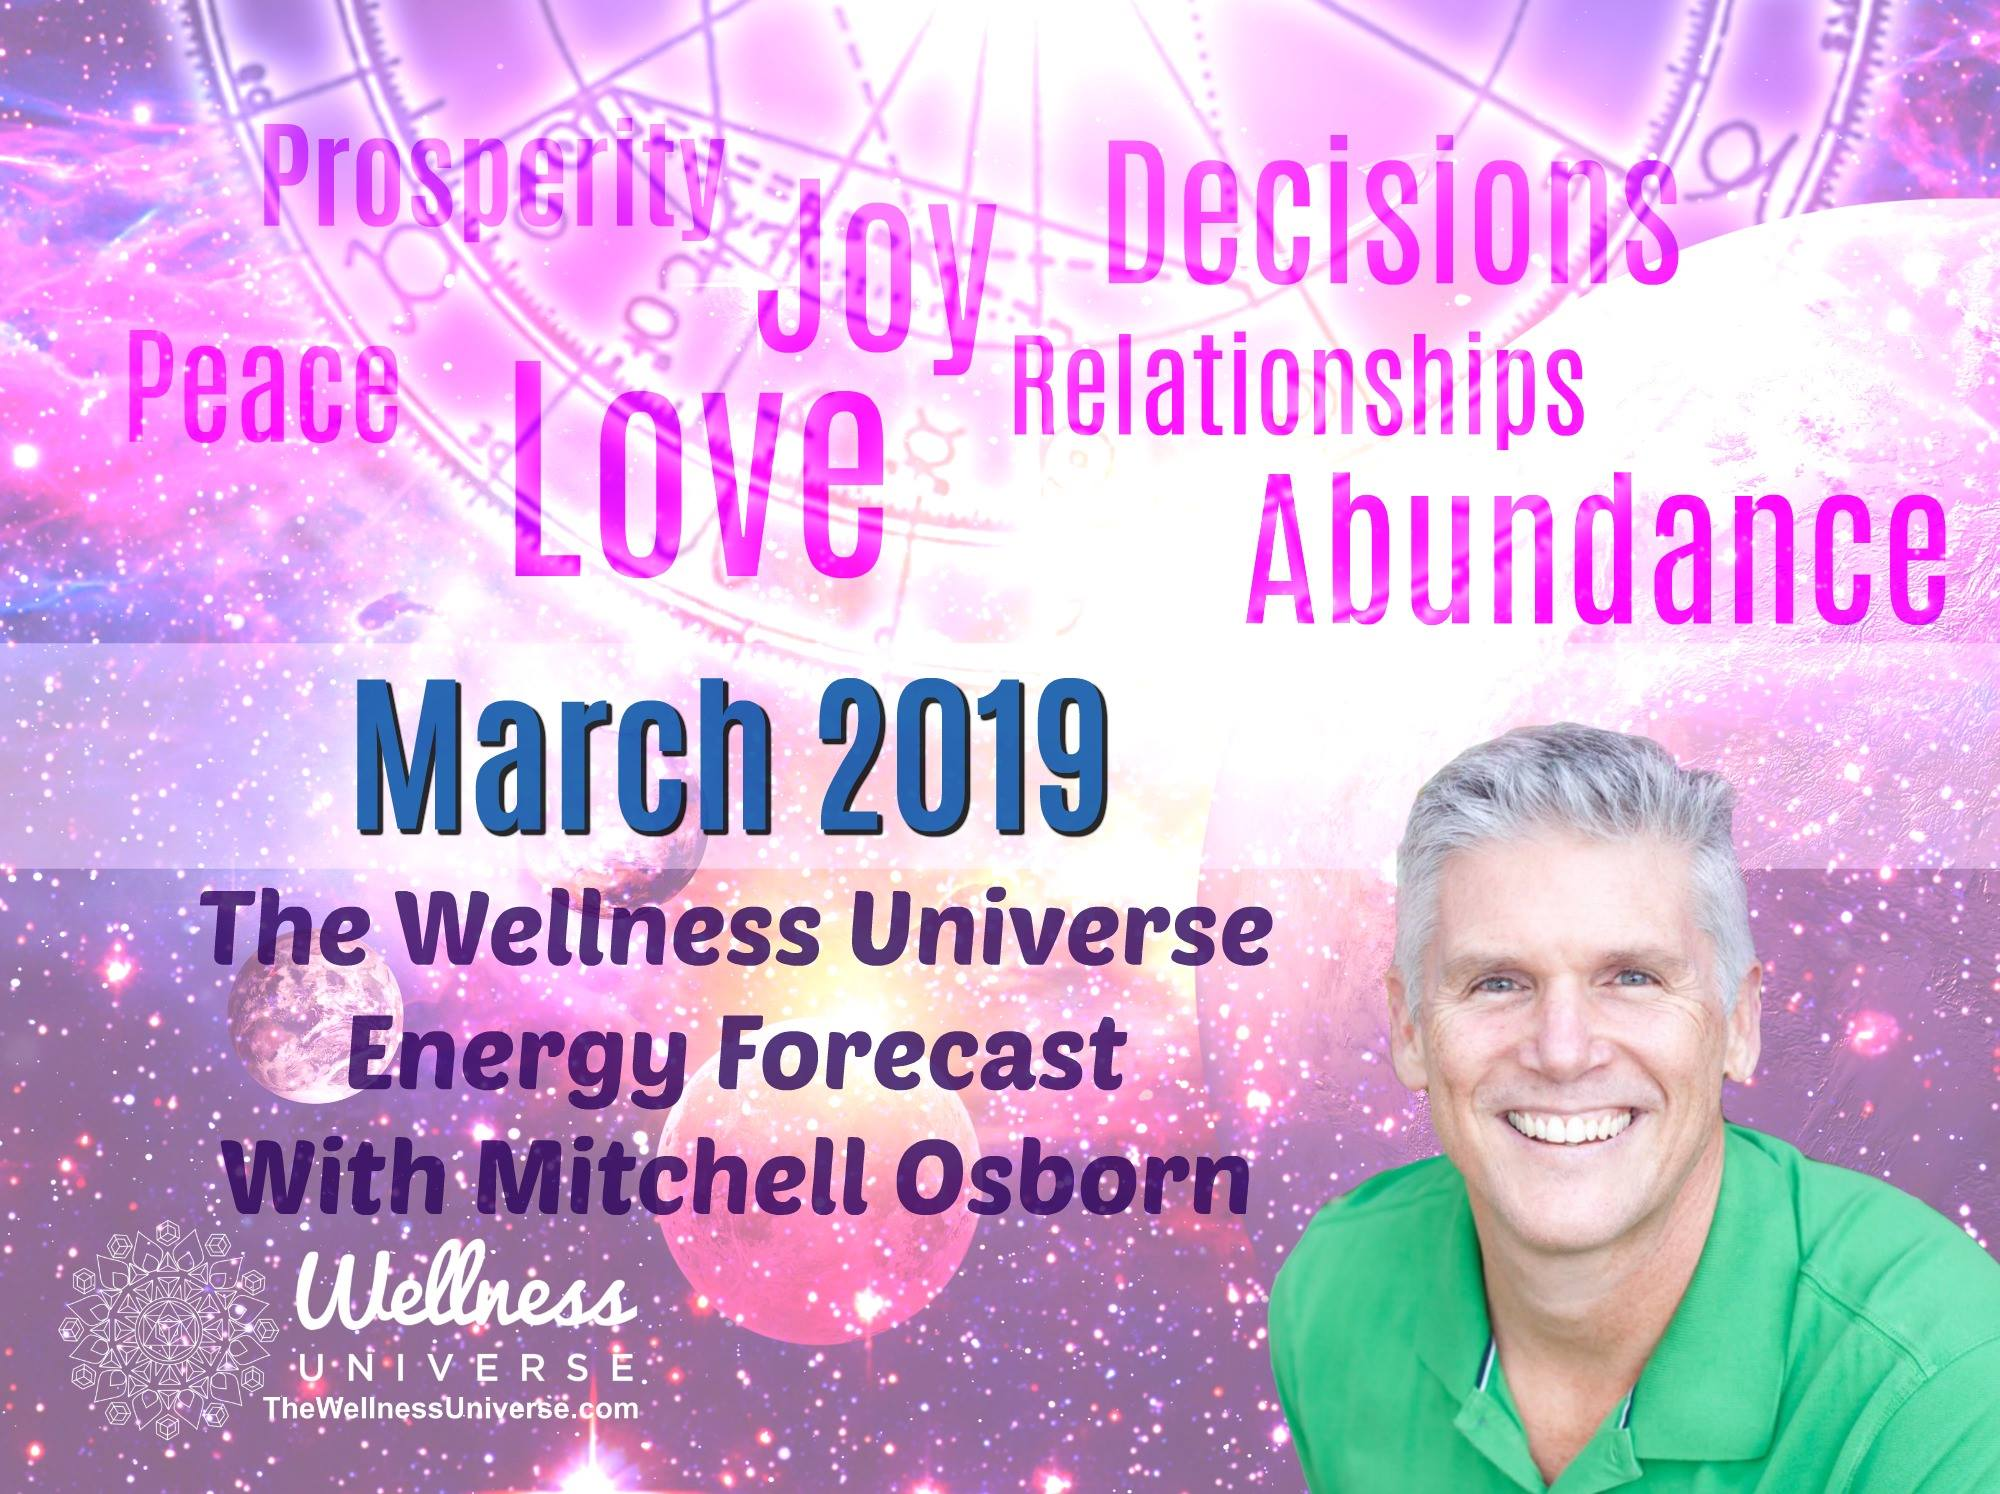 Energy Forecast for March 2019 with Mitchell Osborn #TheWellnessUniverse #WUVIP #ForecastForMarch2019